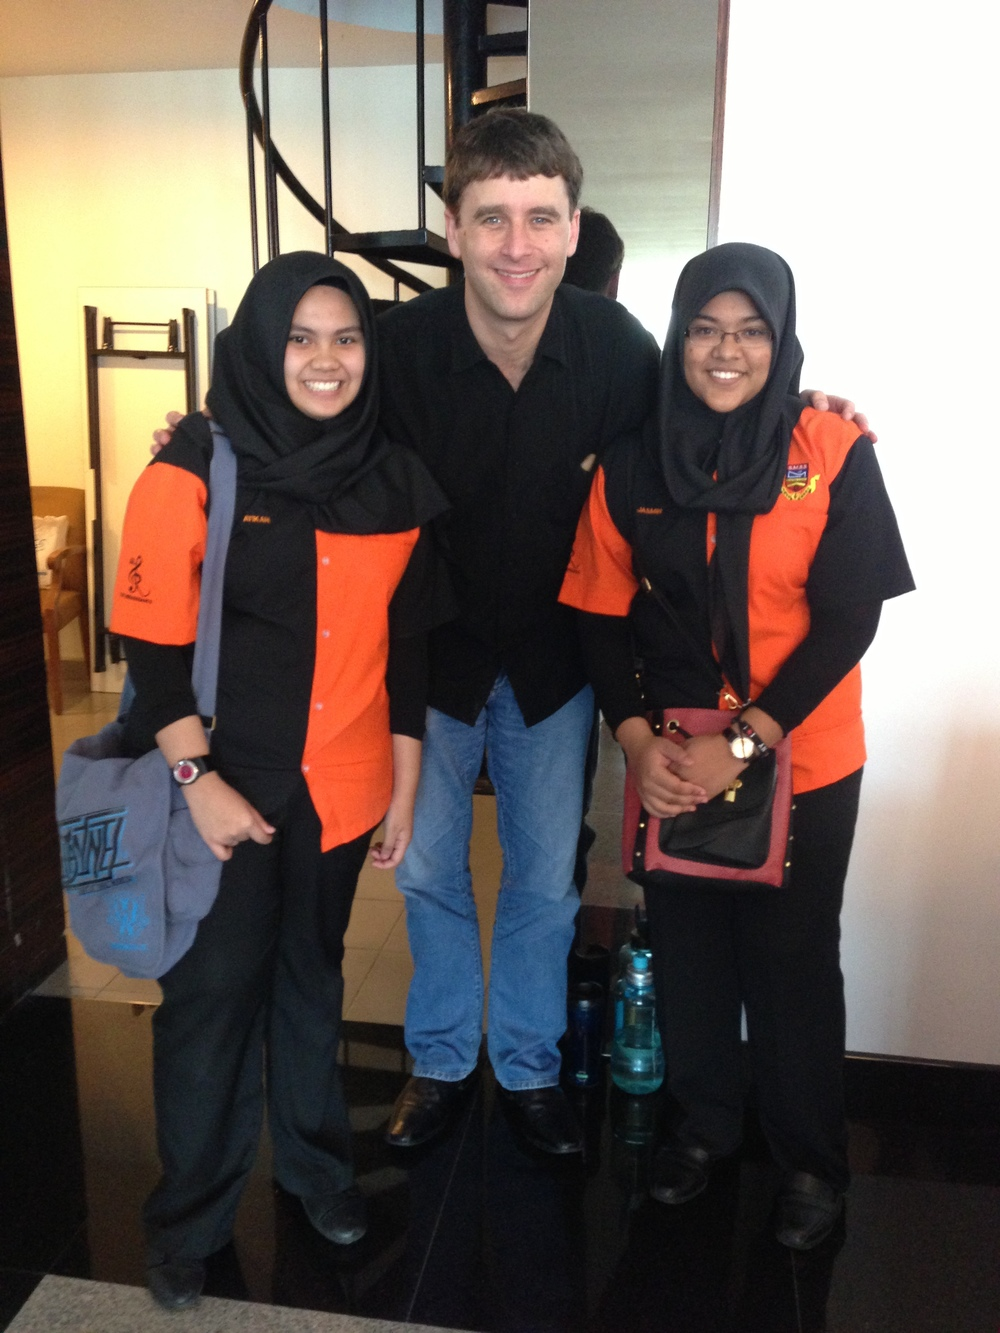 Hanging with two tuba players after a clinic in Kuala Lampur, Malaysia